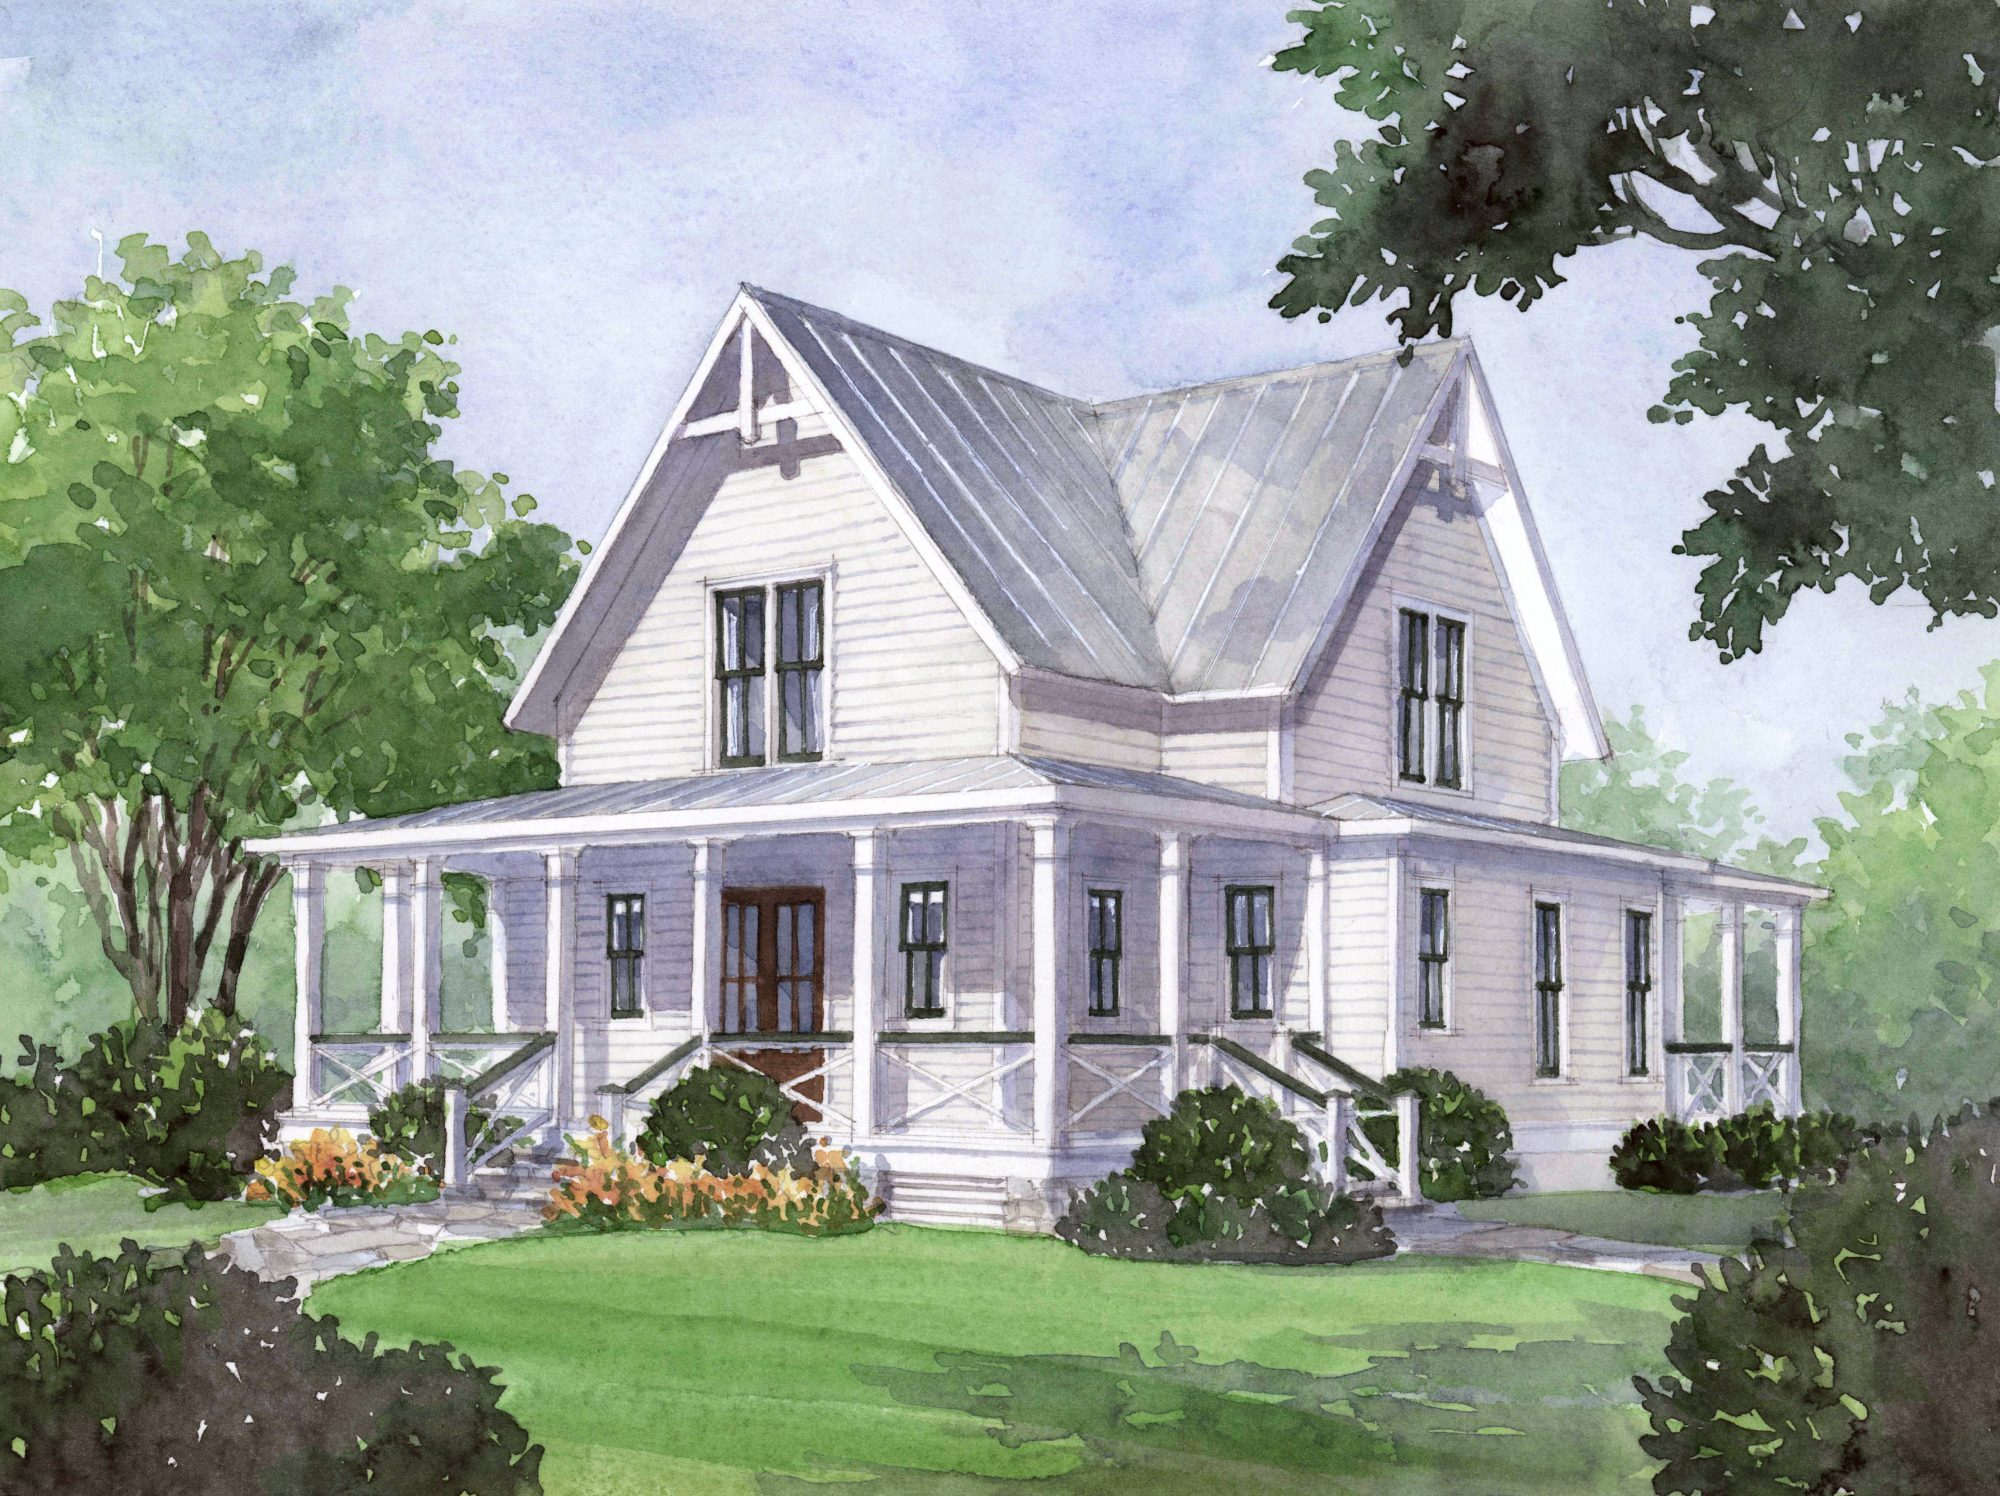 Farmhouse Plans Southern Living house plan of the month: four gables - southern living